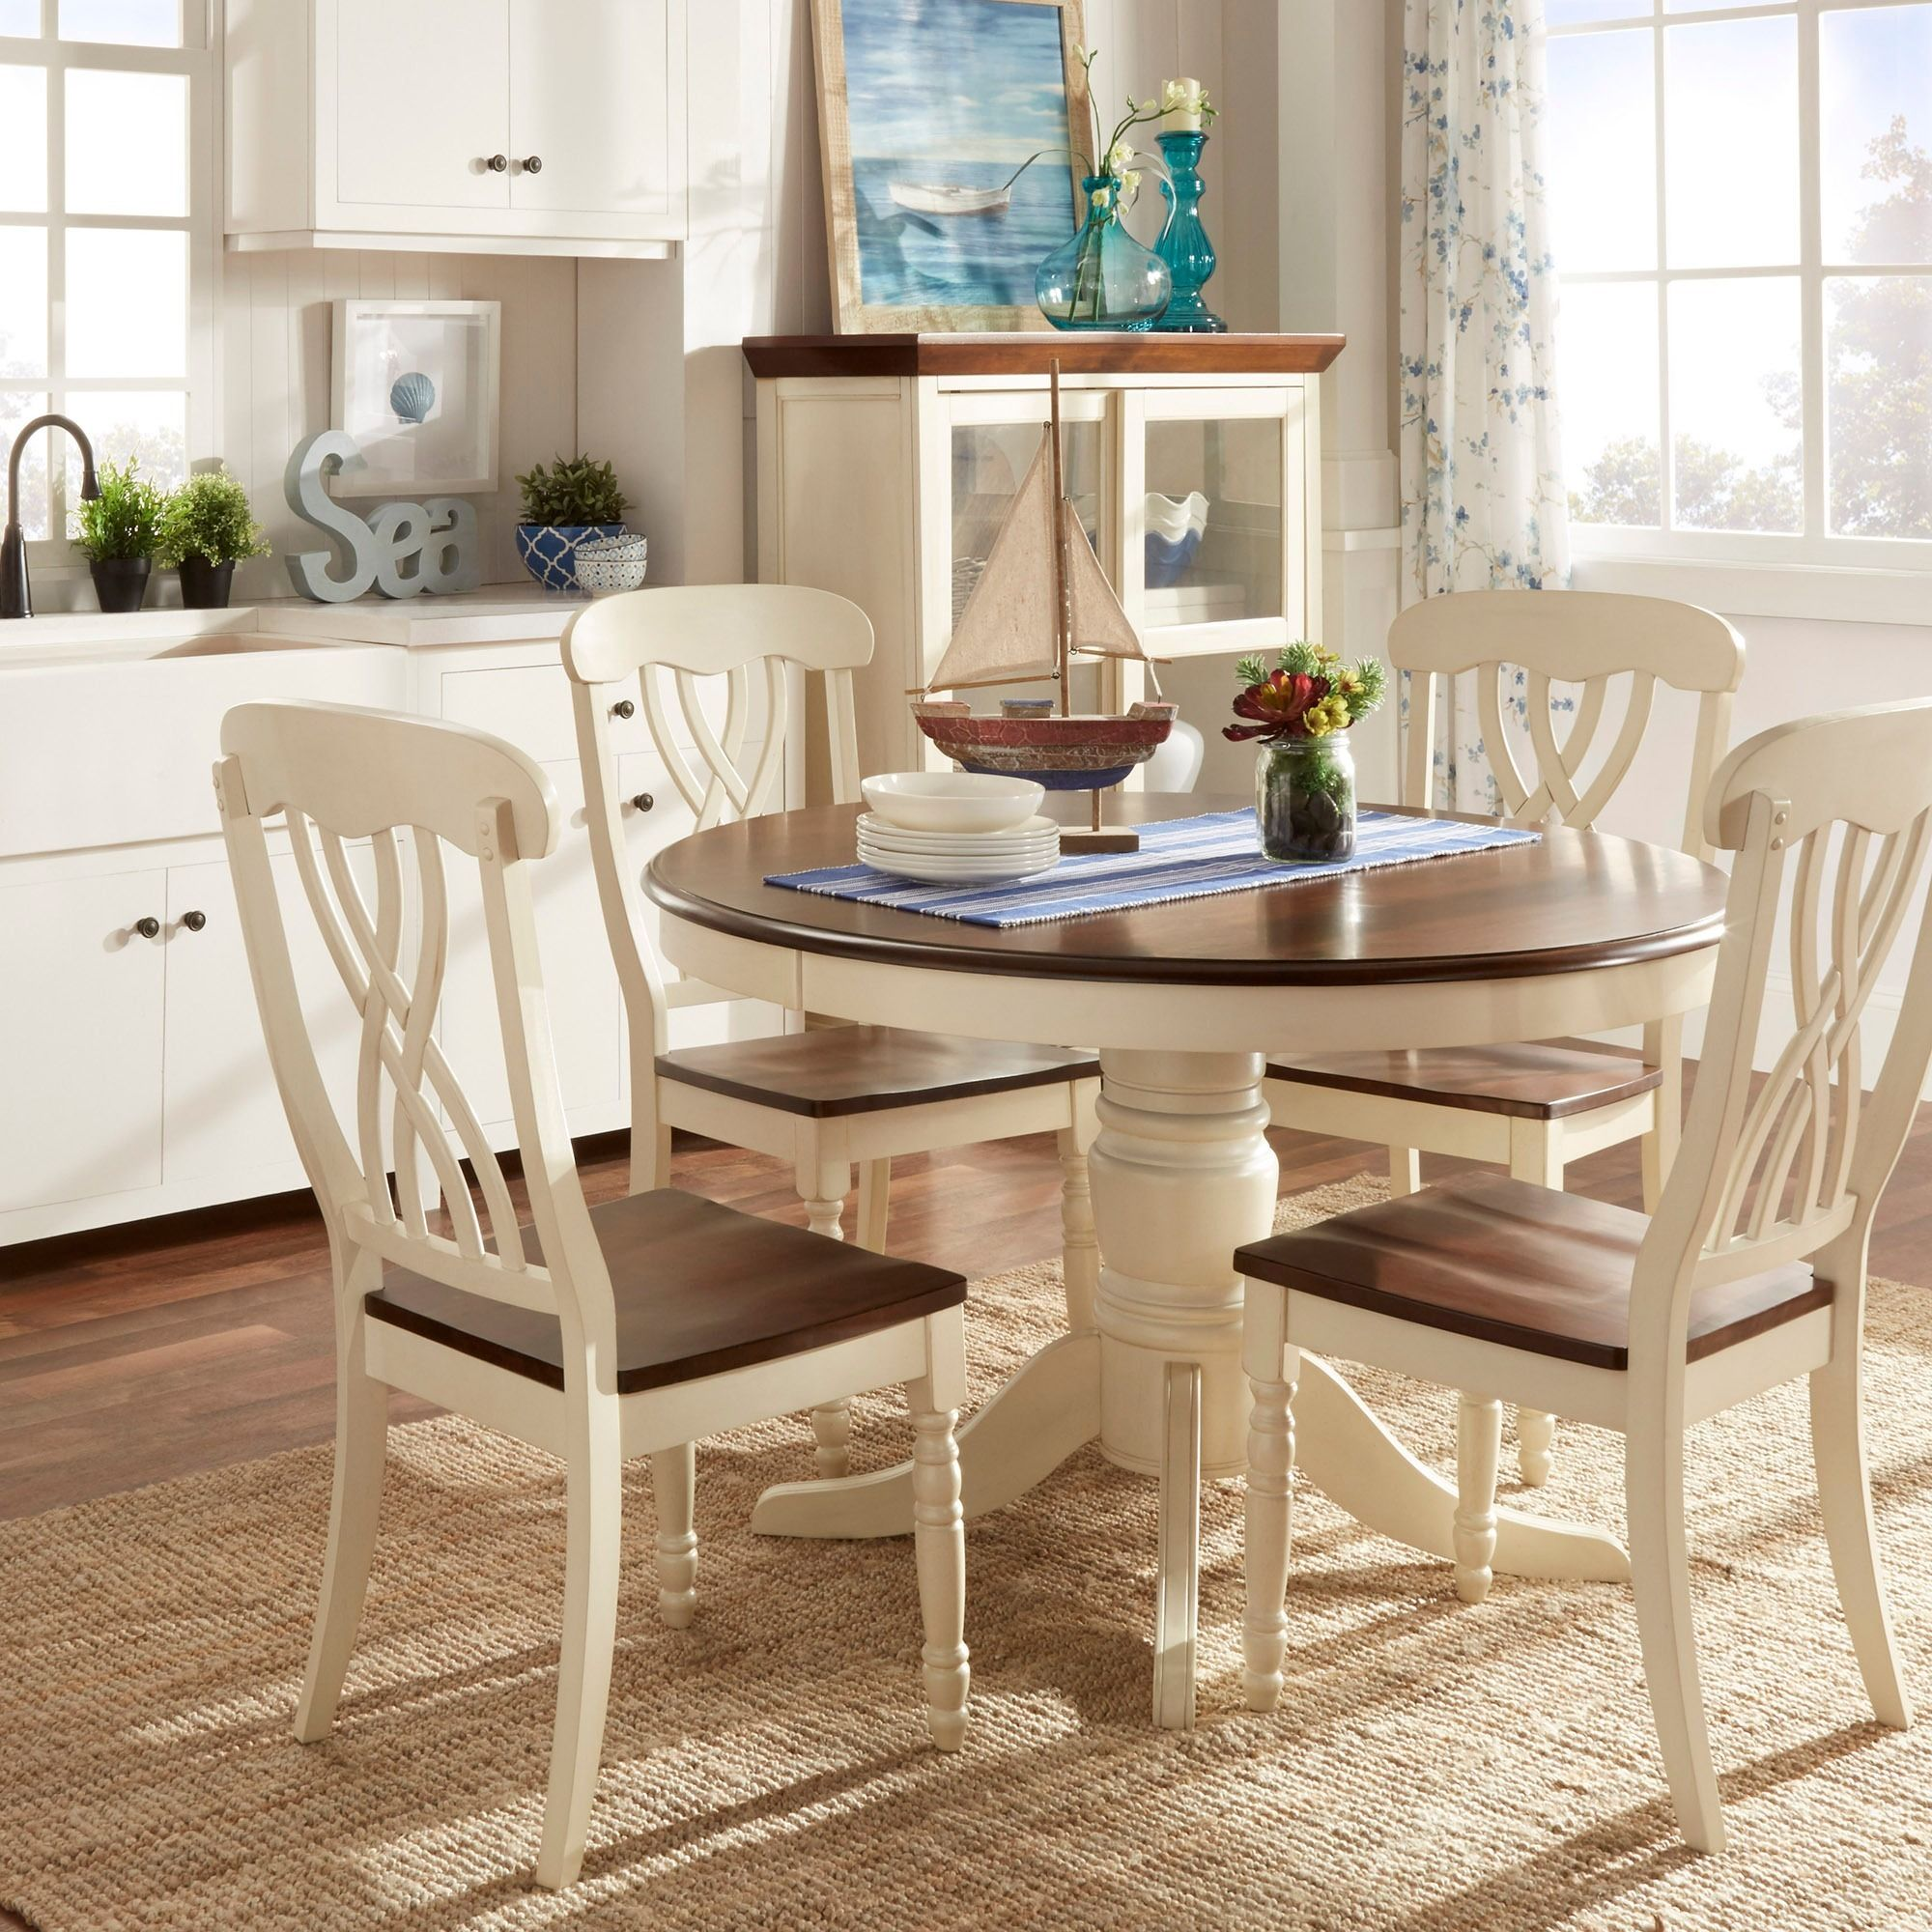 Country Kitchen Table And Chairs: Tribecca Home Mackenzie Country Style Two-tone Round